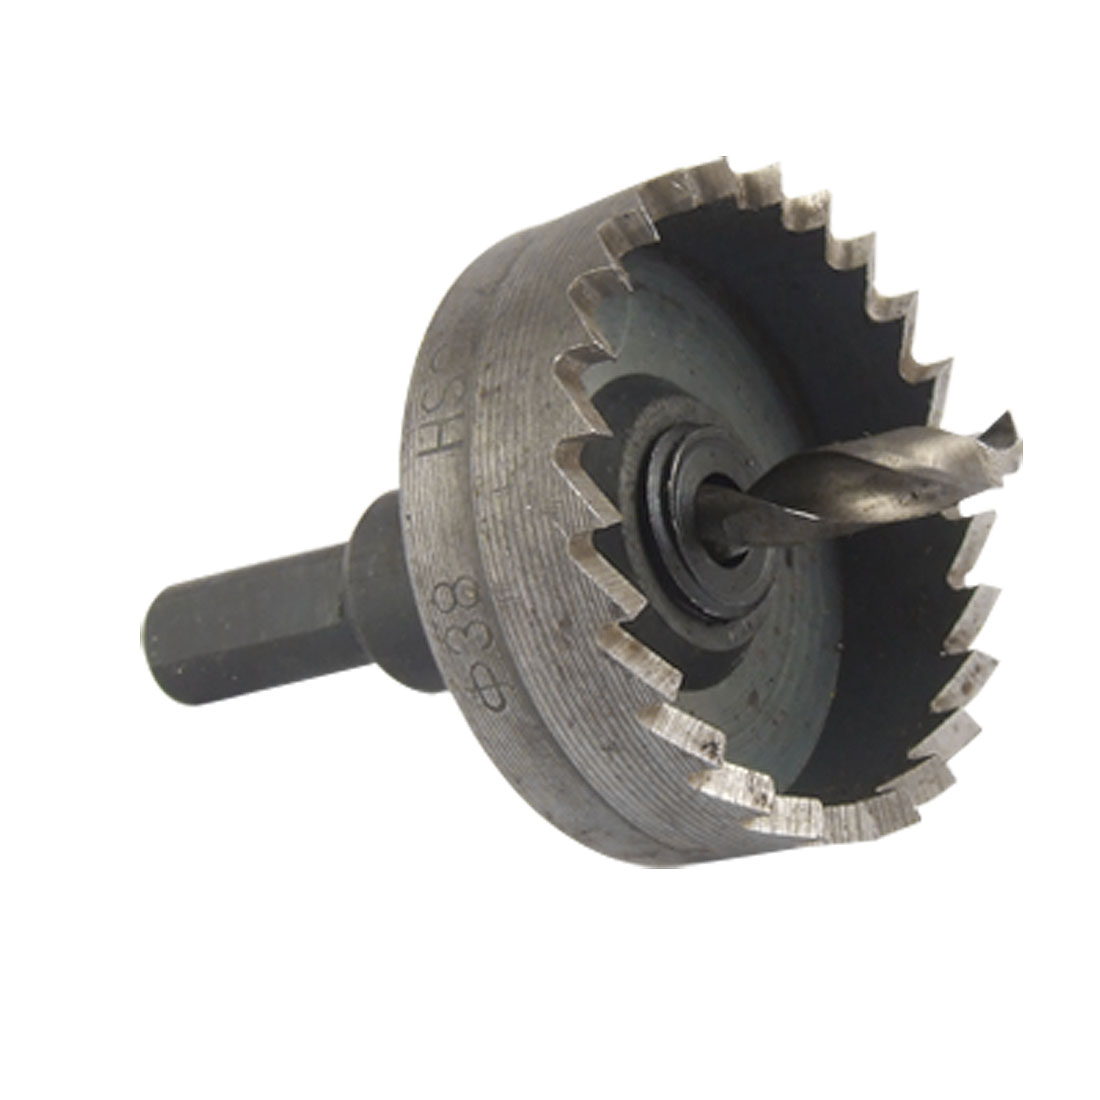 38mm Cutting Dia Twist Drilling Bit Metal Hole Saw Cutter